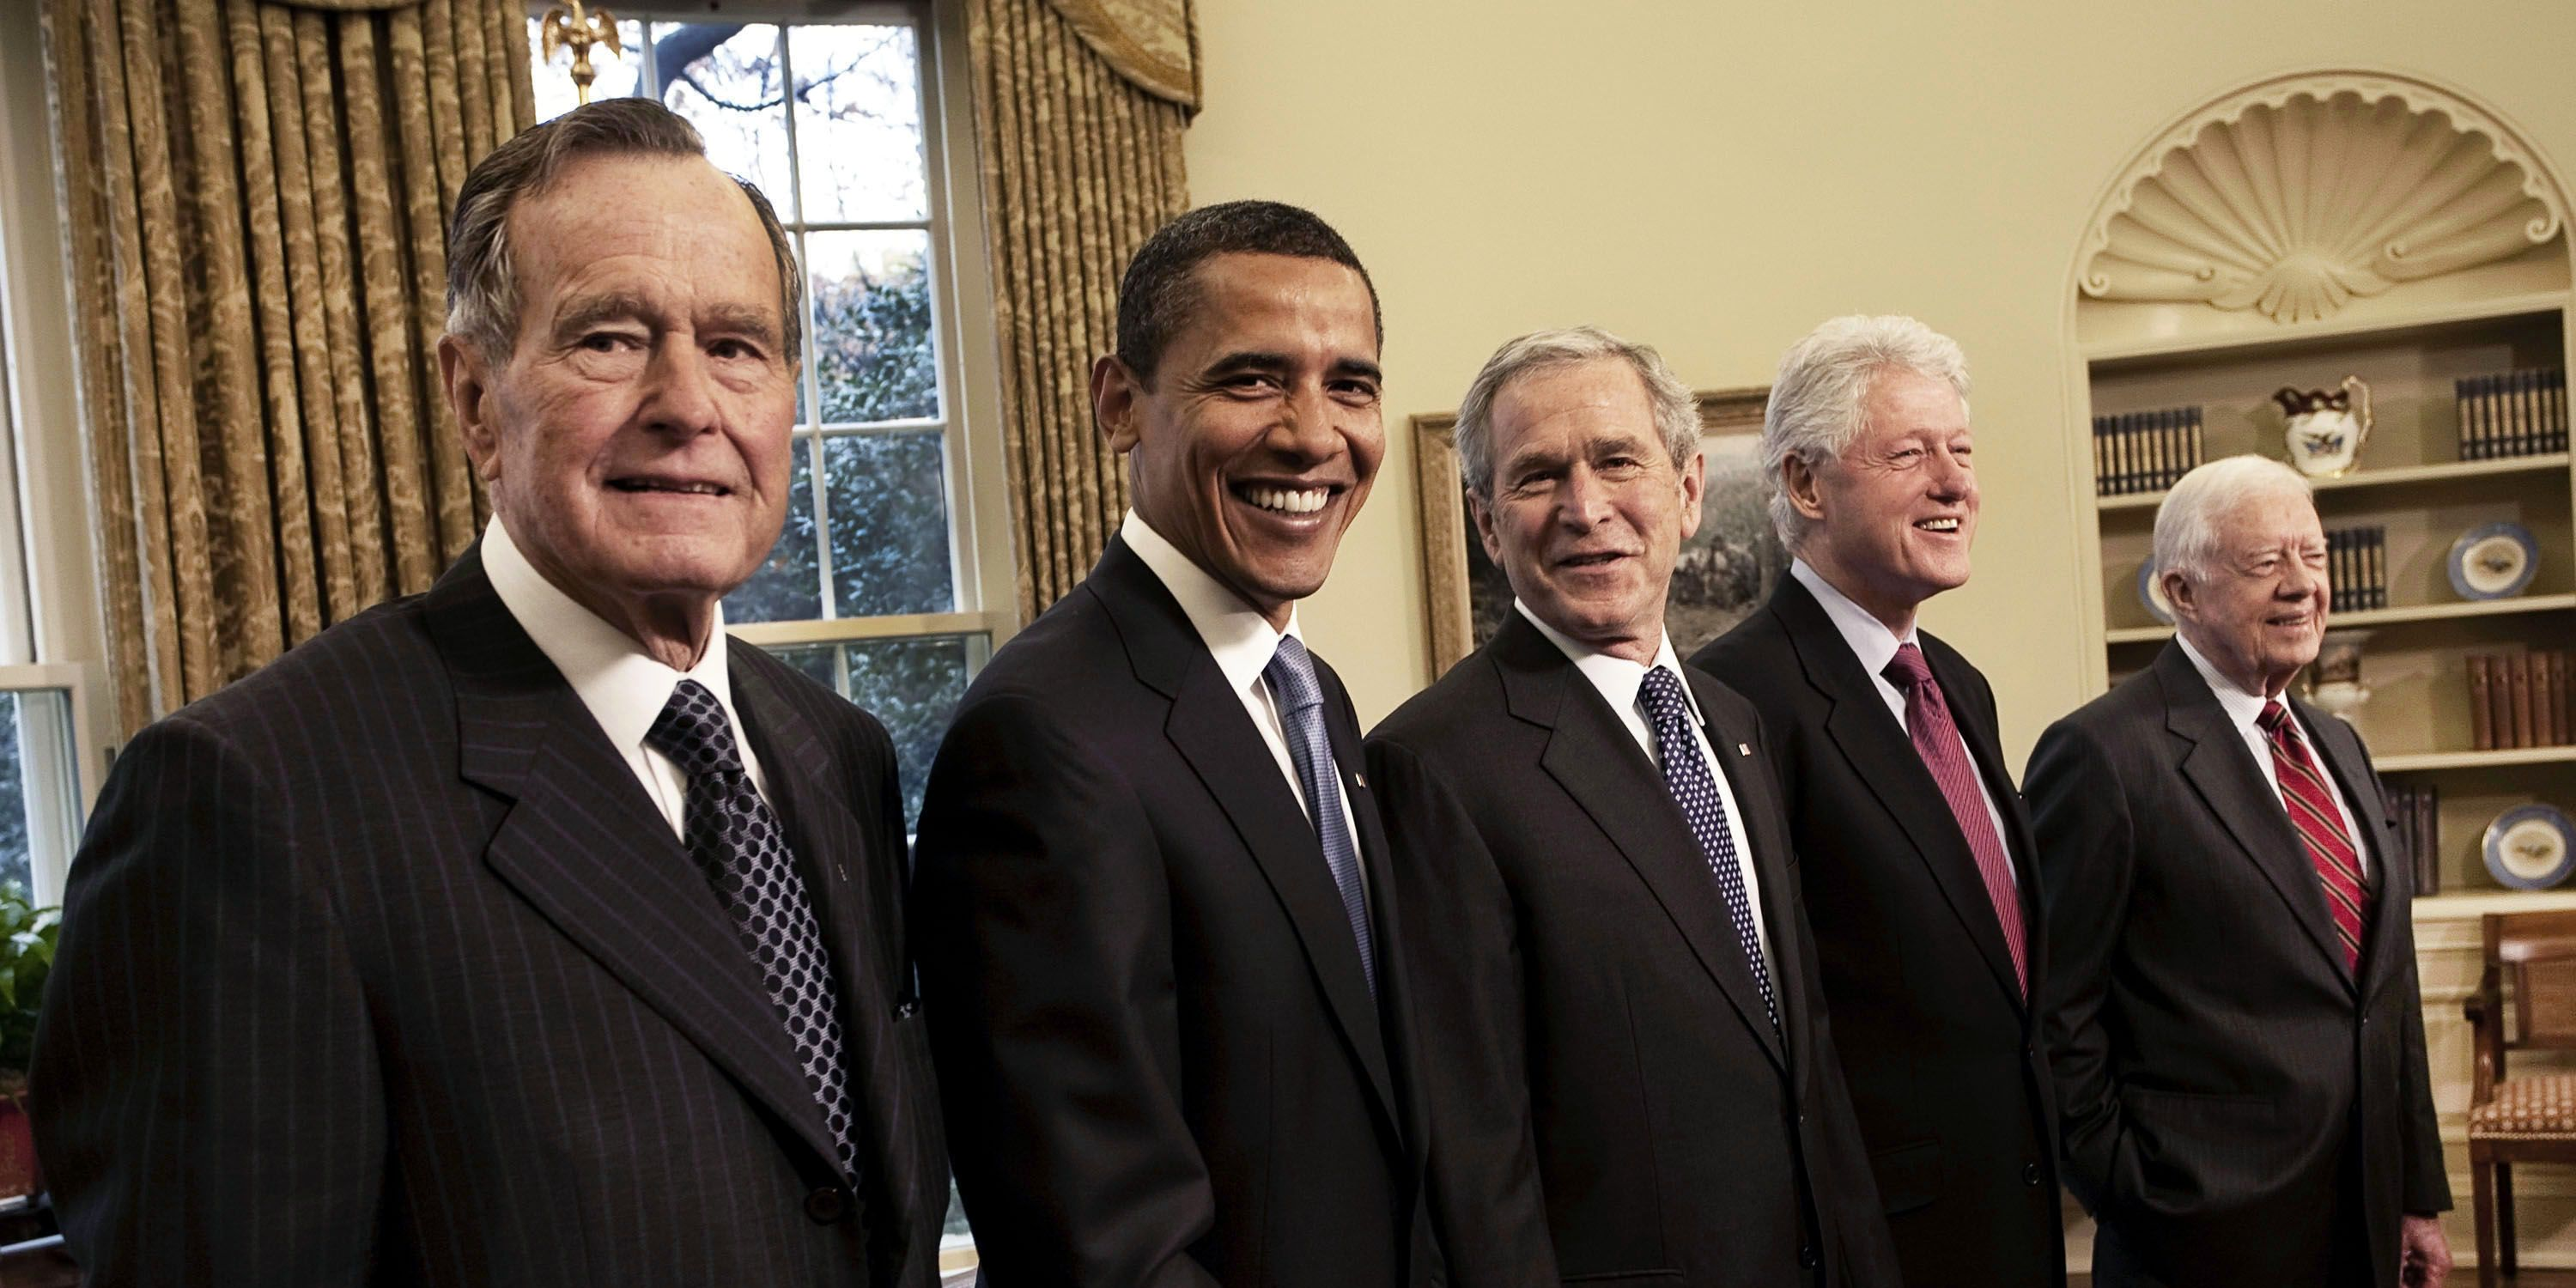 Five Presidents, The Oval Office